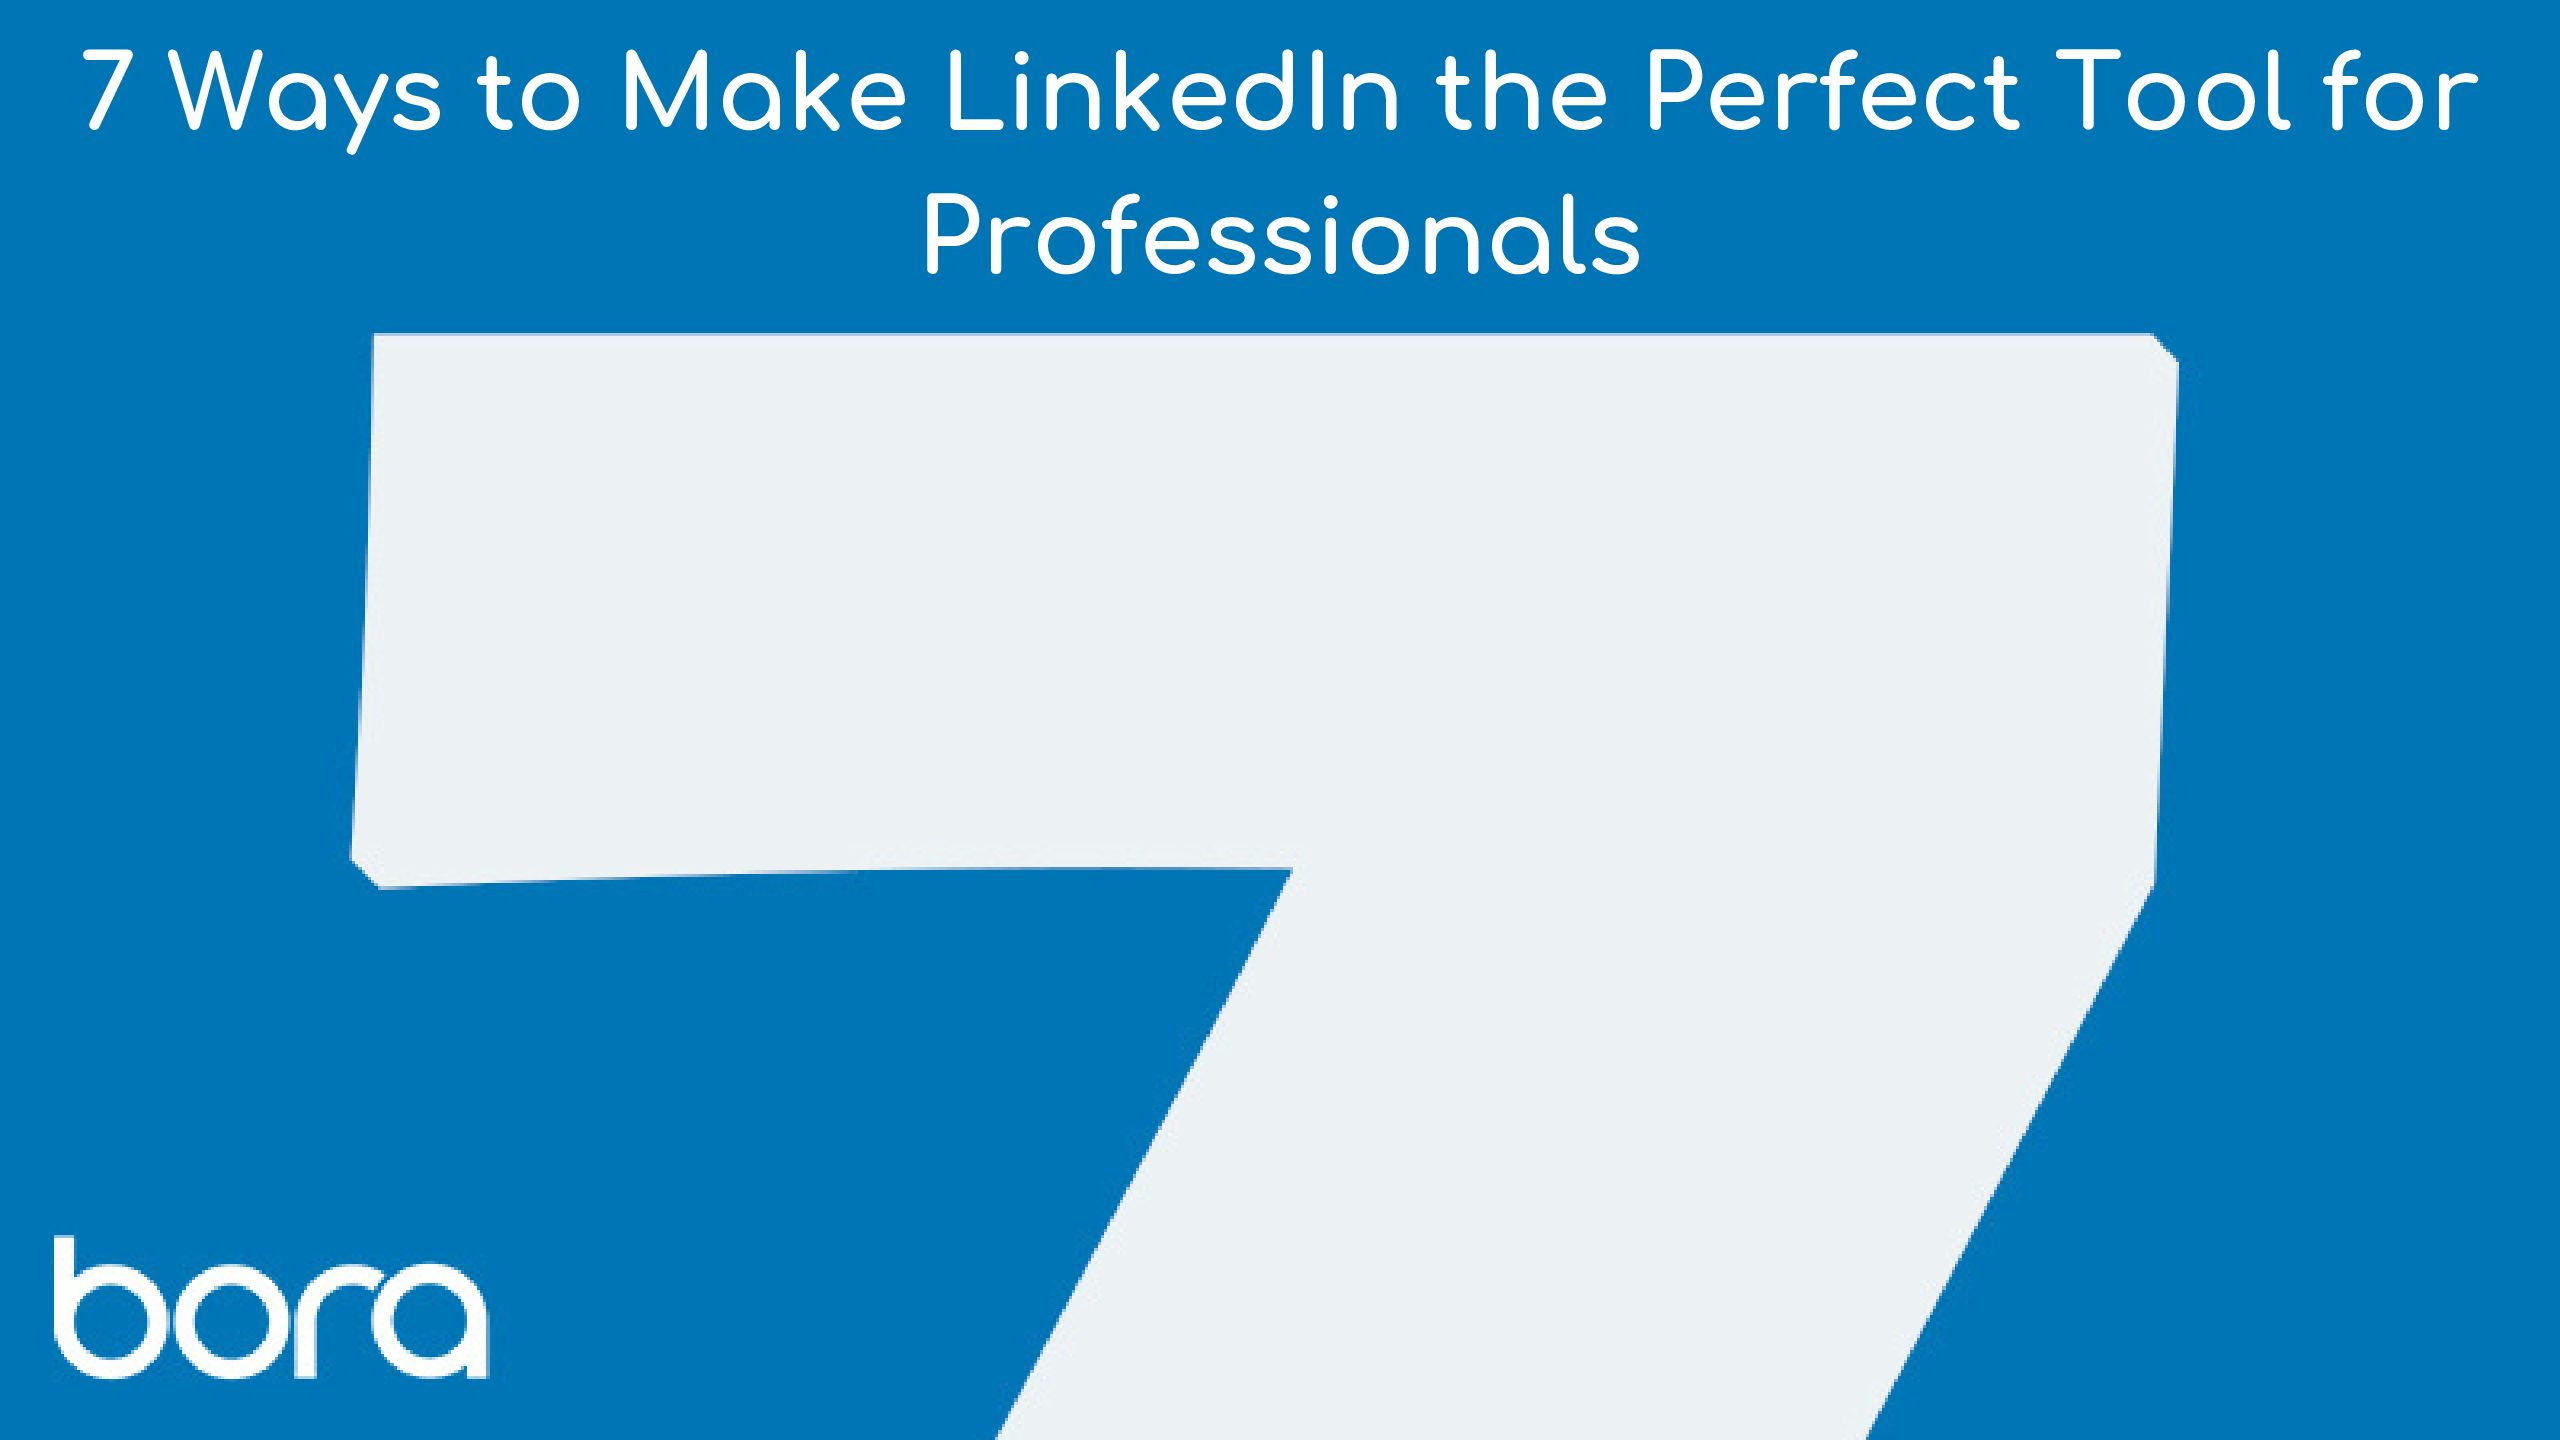 7 Ways to Make LinkedIn the Perfect Tool for Professionals